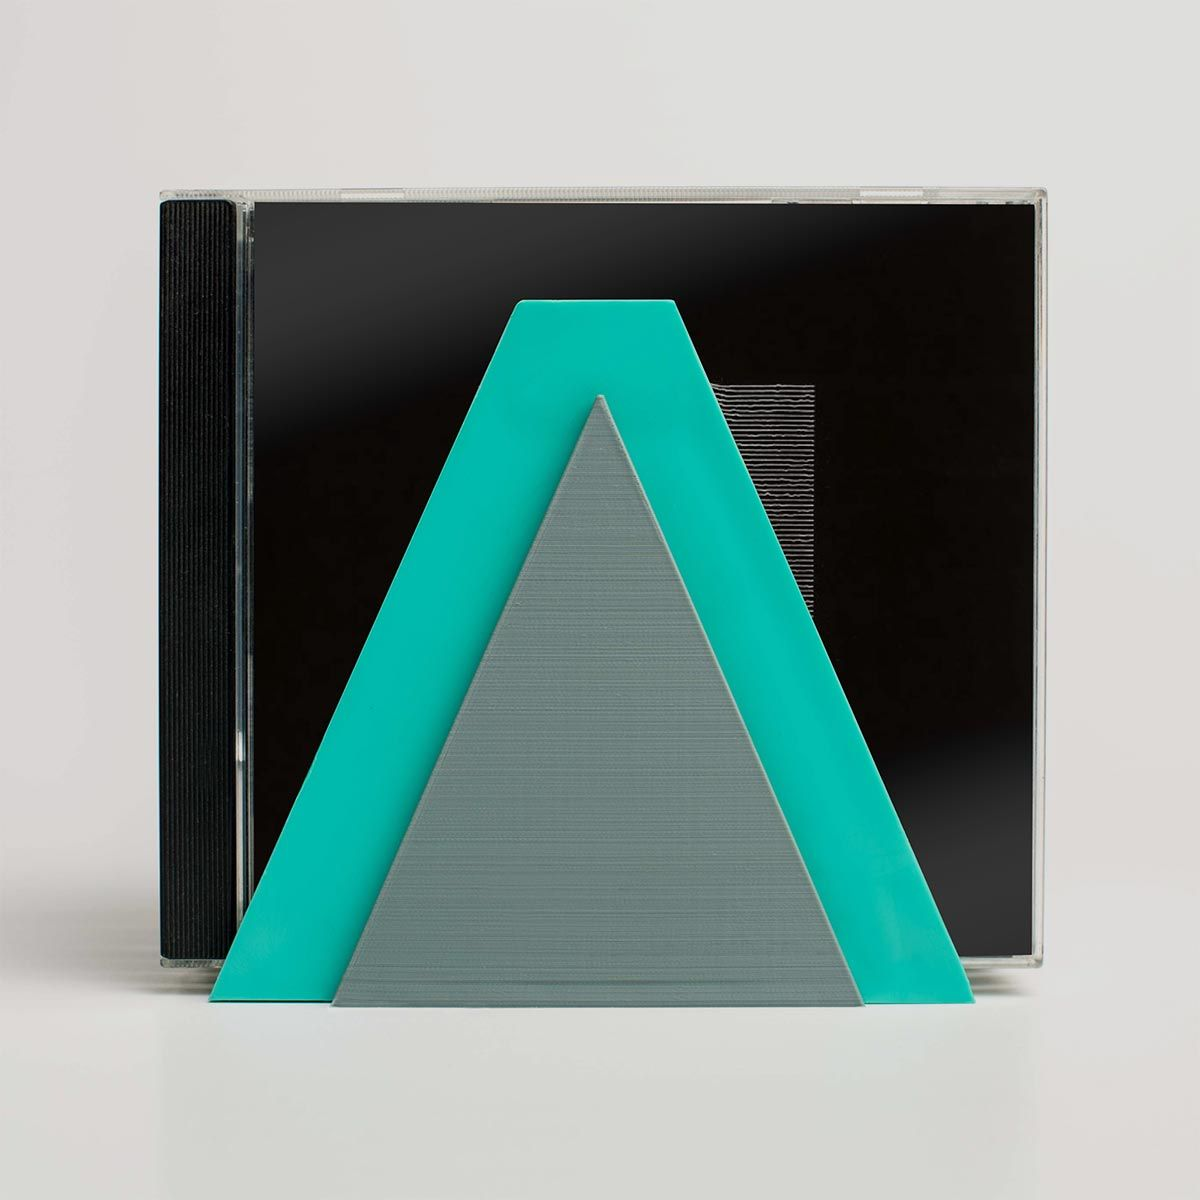 Compact [CD Holder]